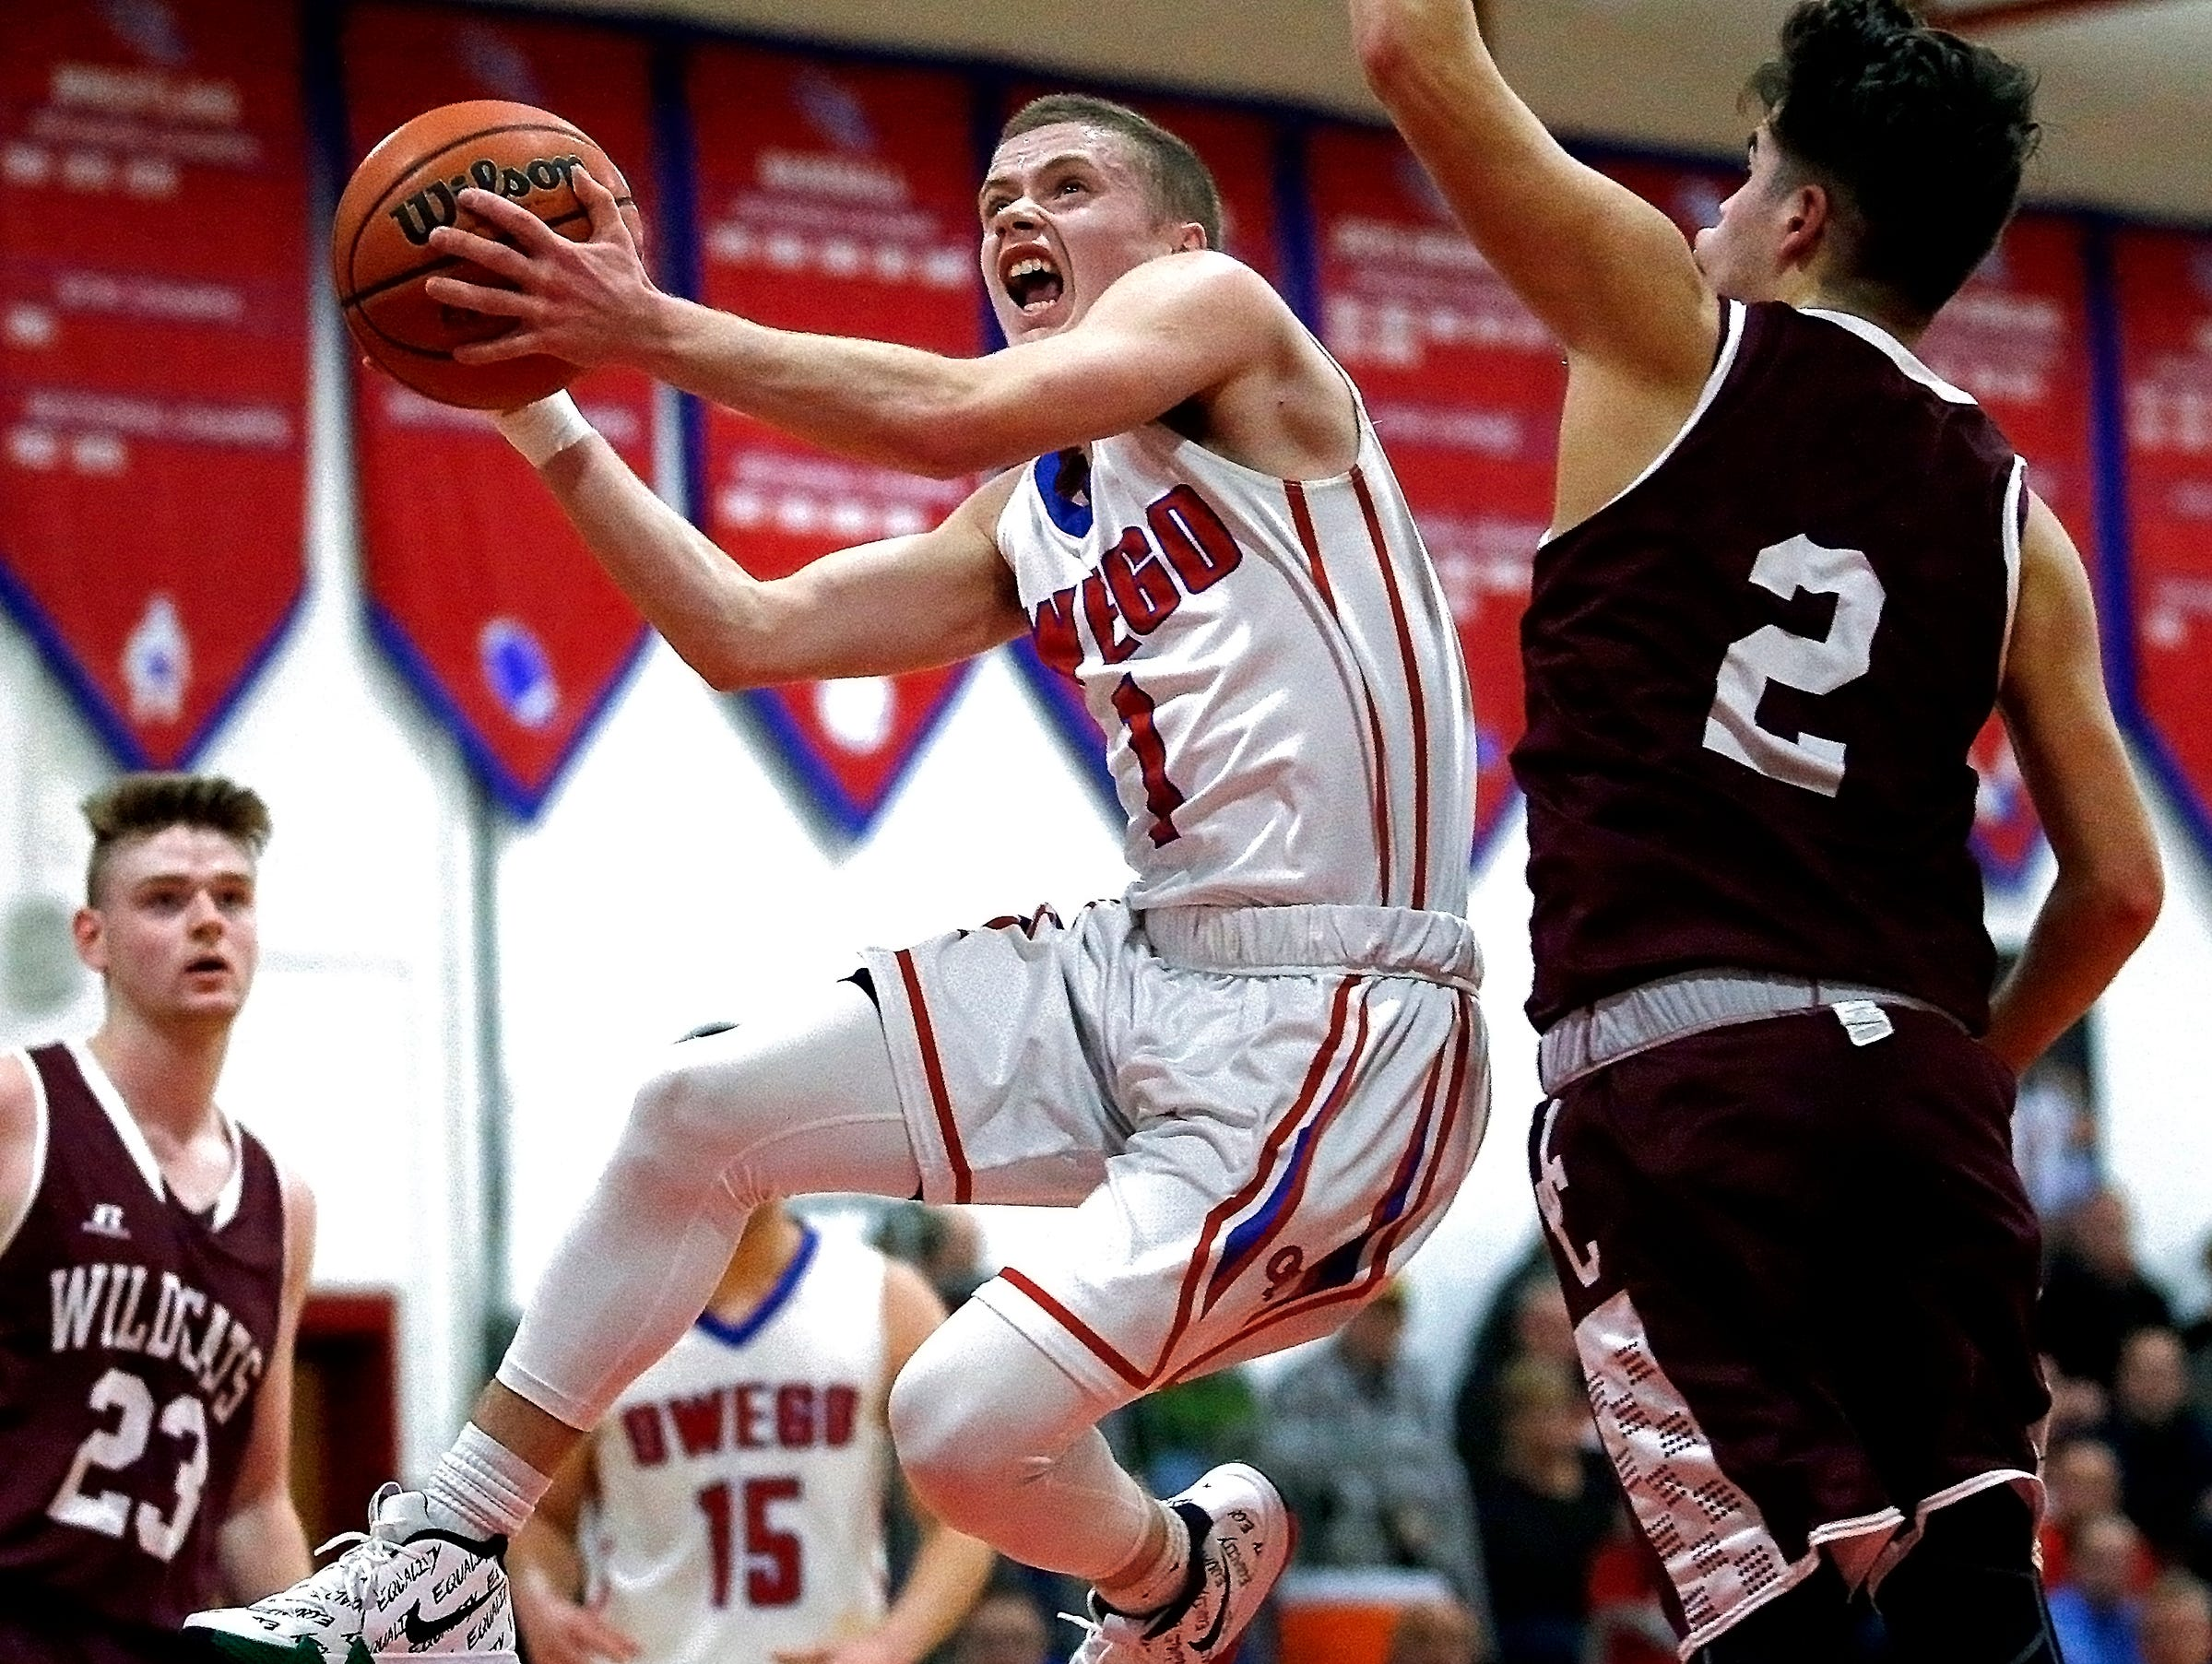 Owego's Christian Sage (1) goes up to score past Johnson City's Alec Lopez (2) during Owego vs. Johnson City, Friday, January 26, 2018. Owego won in double overtime, with a final score of 76-75.